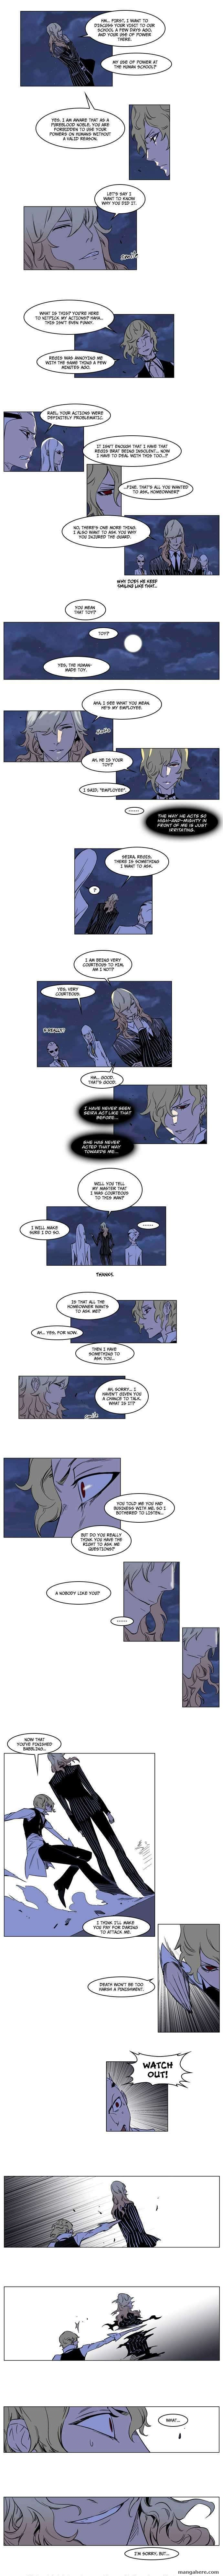 Noblesse 168 Page 3